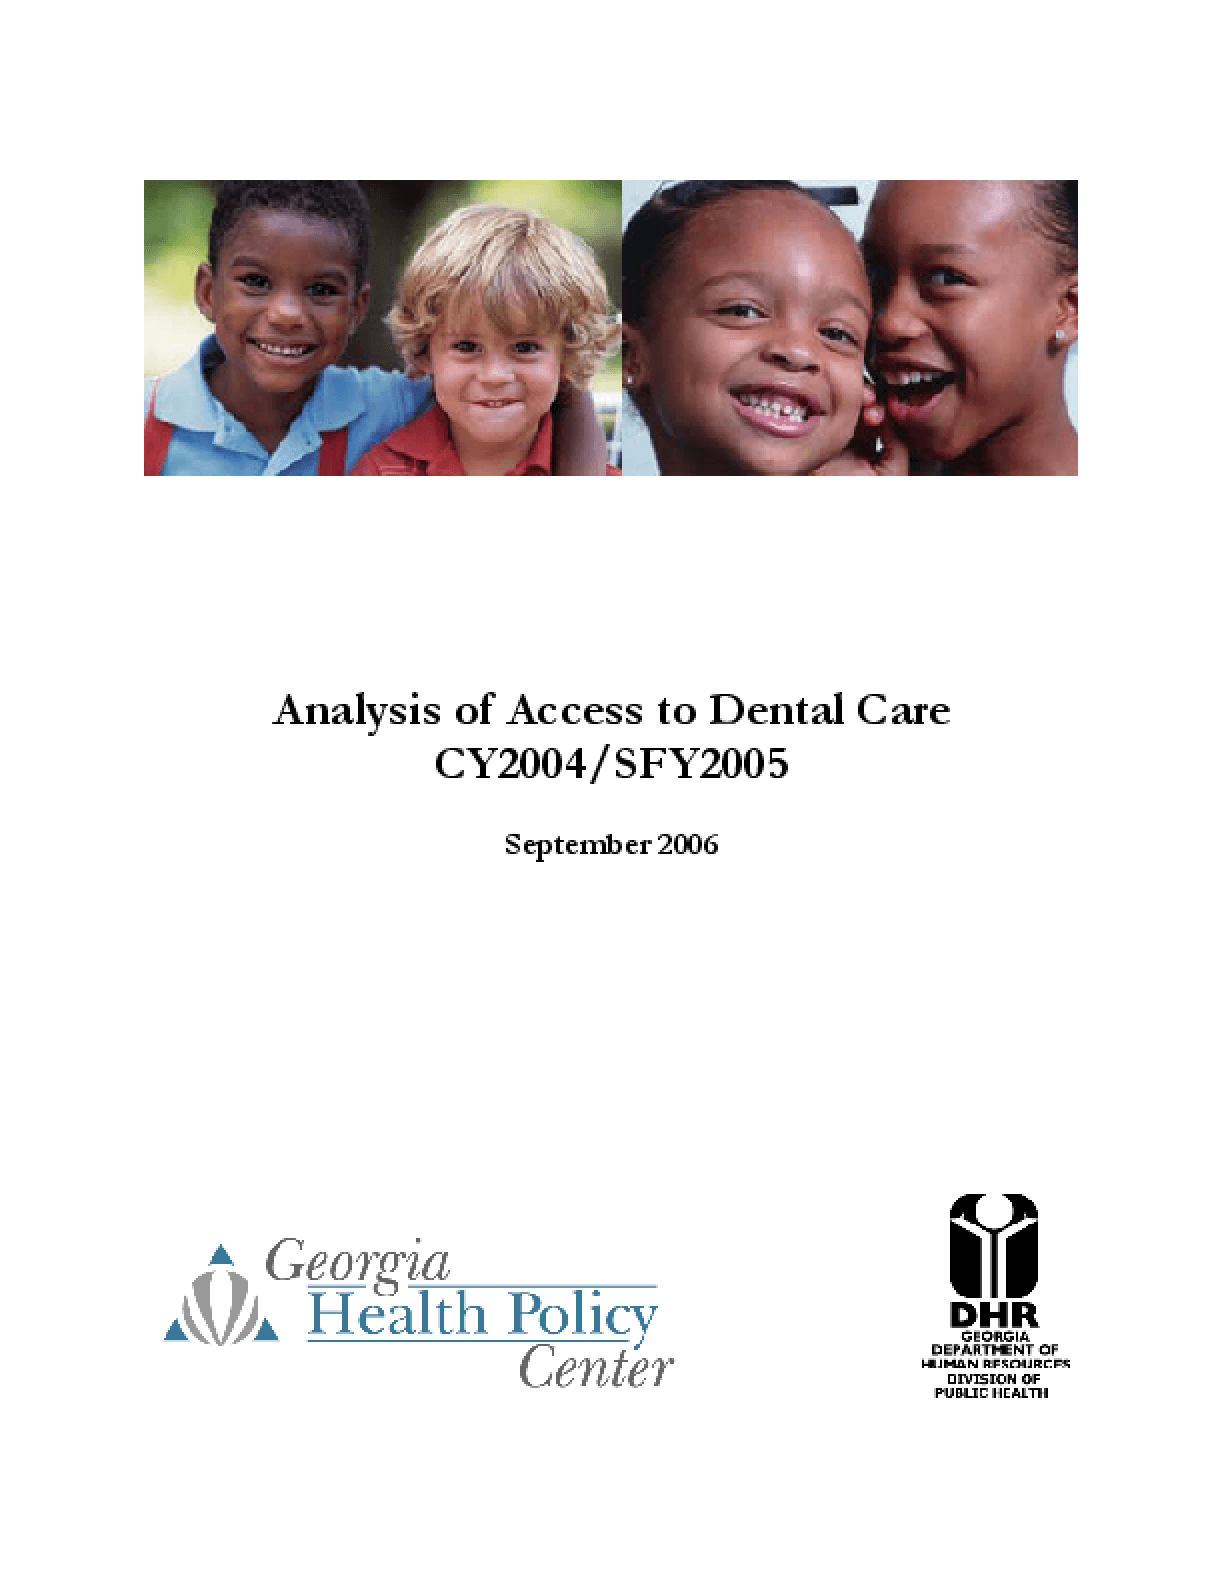 CY2004 Analysis of Access to Dental Care